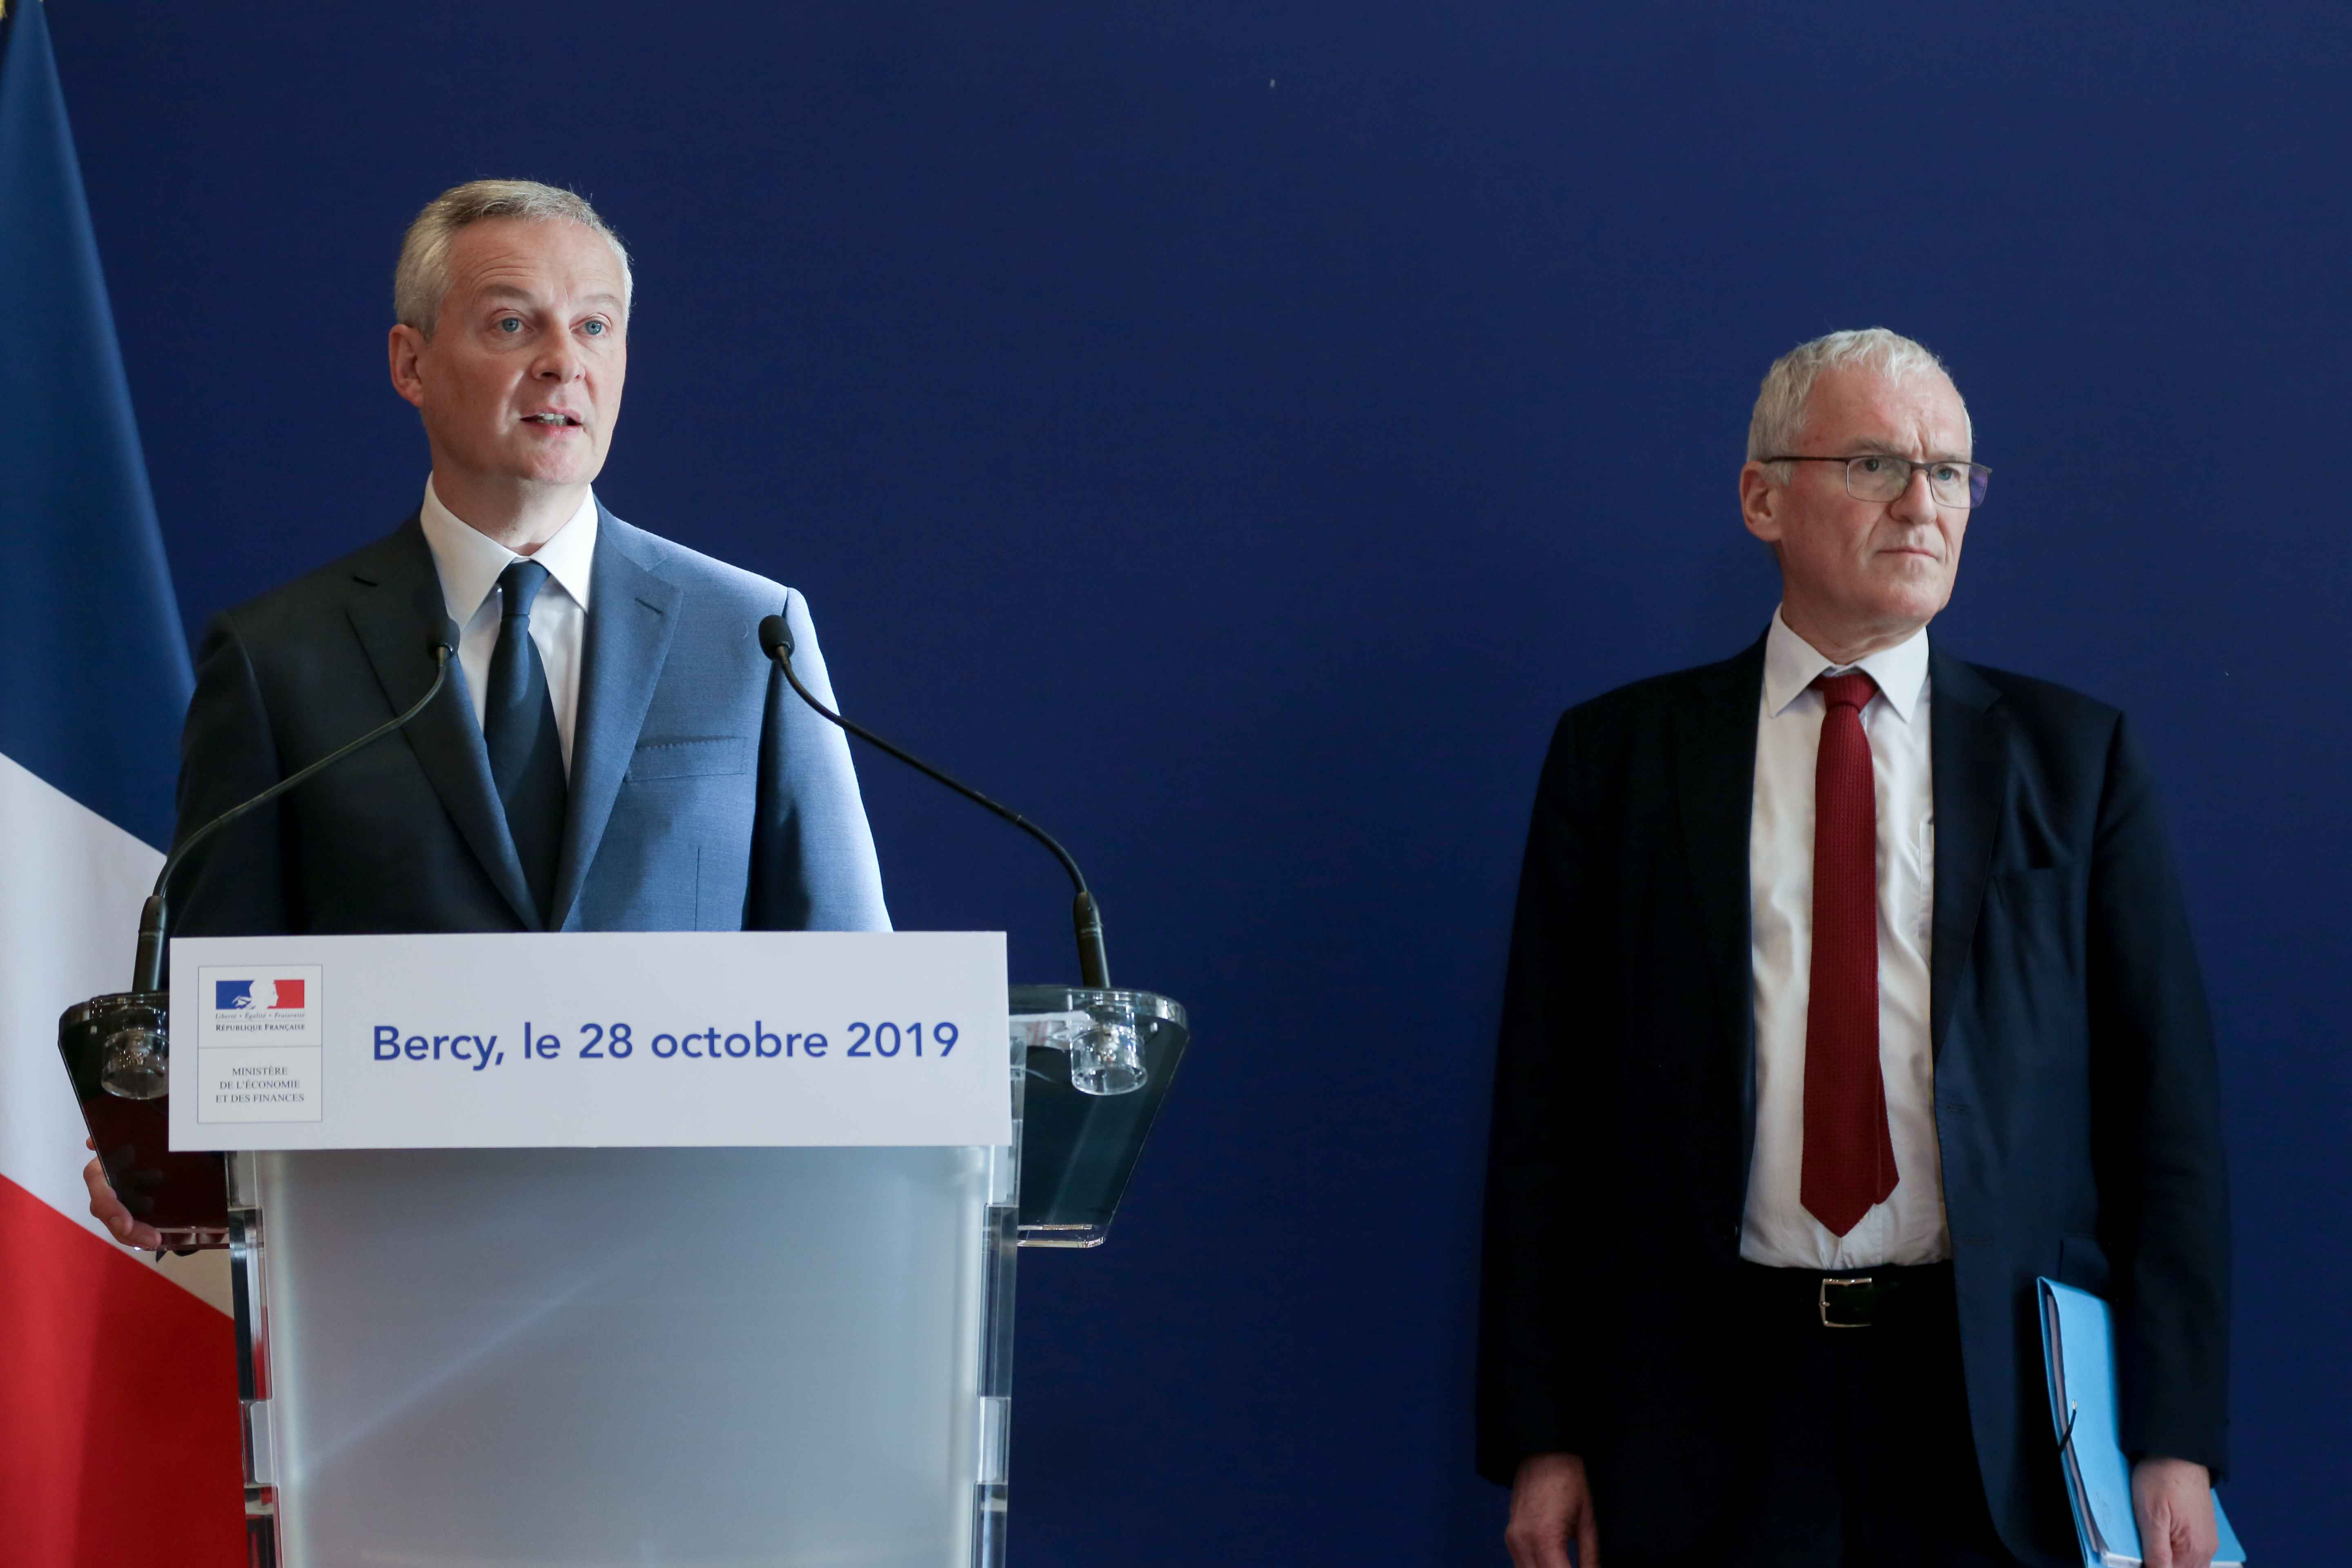 (From L to R) French Finance and Economy Minister Bruno Le Maire and French energy giant EDF's CEO Jean-Bernard Levy give a joint press conferencein Folz and French eneregy giant EDF's CEO Jean-Bernard Levy to present a report  concerning the construction